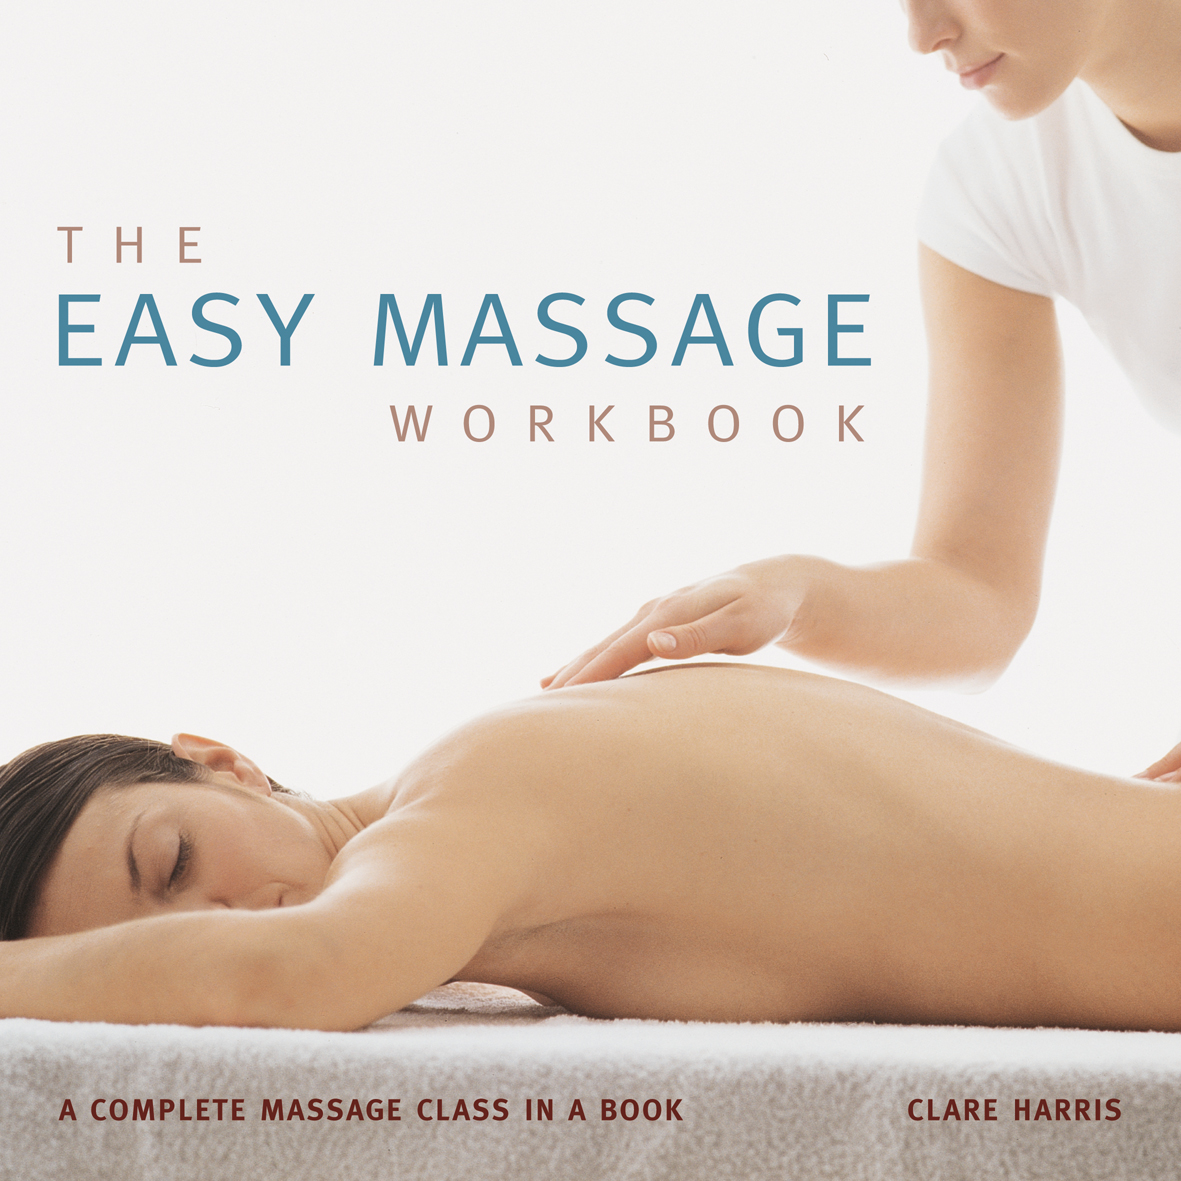 A complete massage class in a book